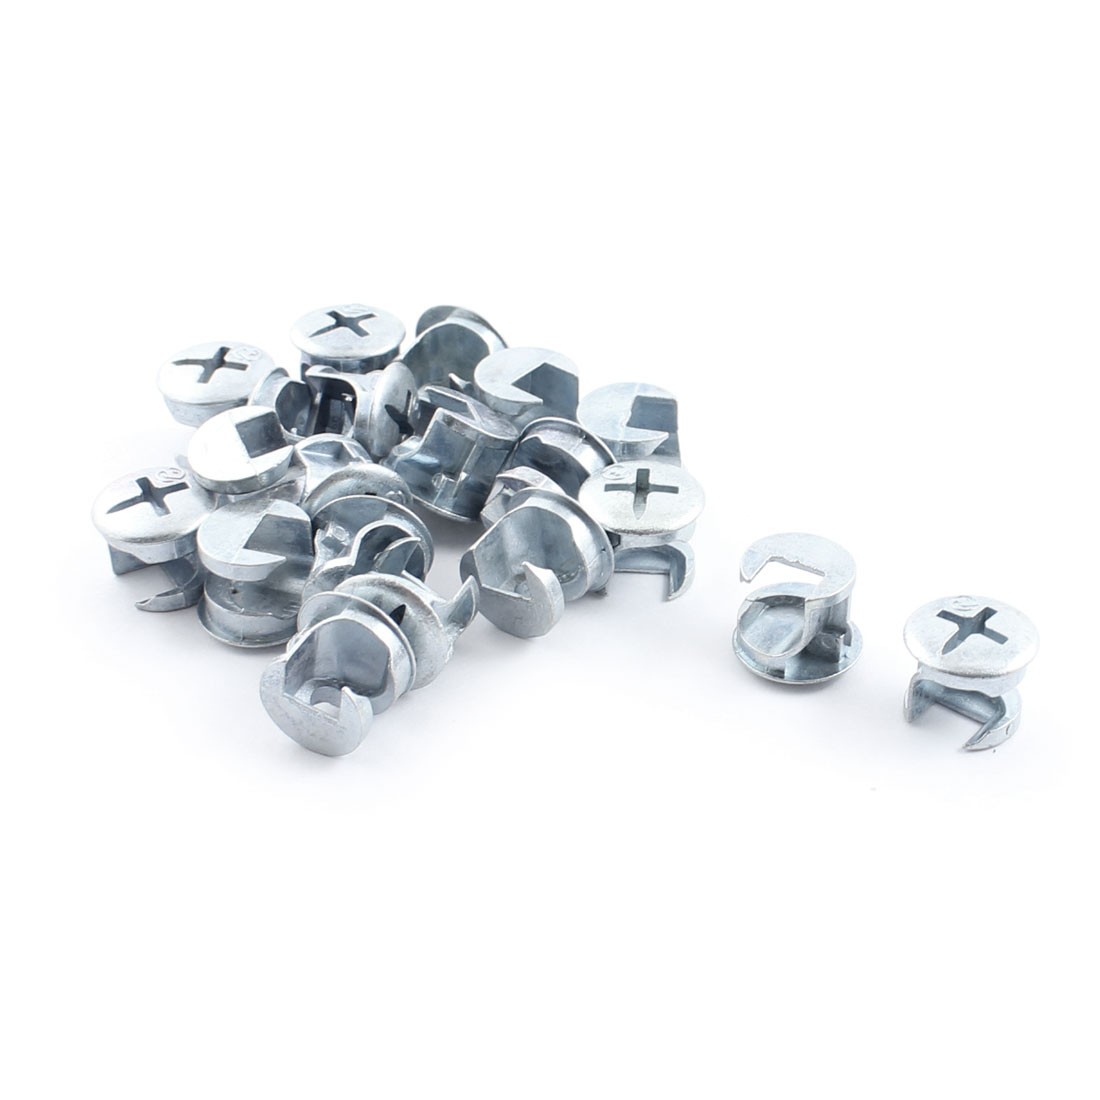 20 Pcs Furniture Cabinet Glass Silver Tone Connecting Cam Fitting